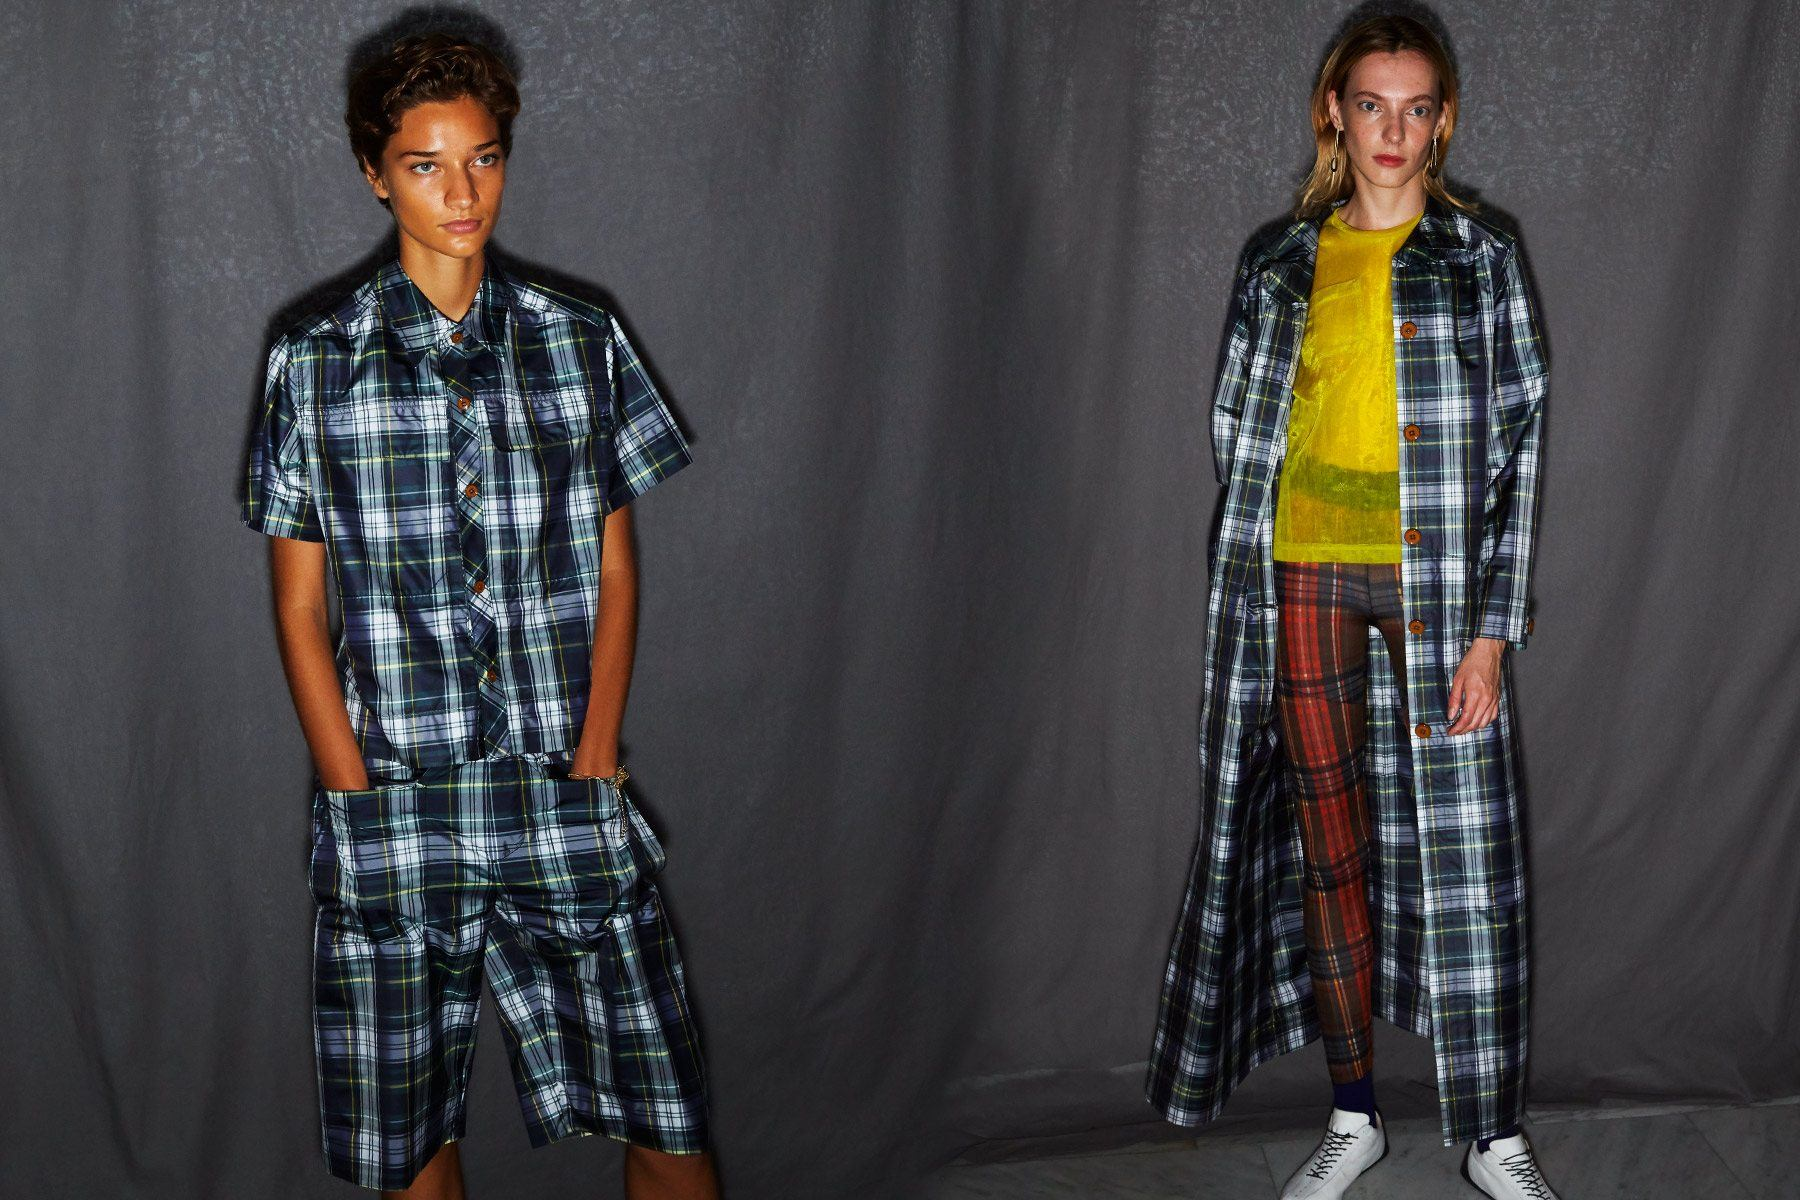 Plaid looks from the Linder Spring/Summer 2019 collection, photographed by Alexander Thompson for Ponyboy magazine.